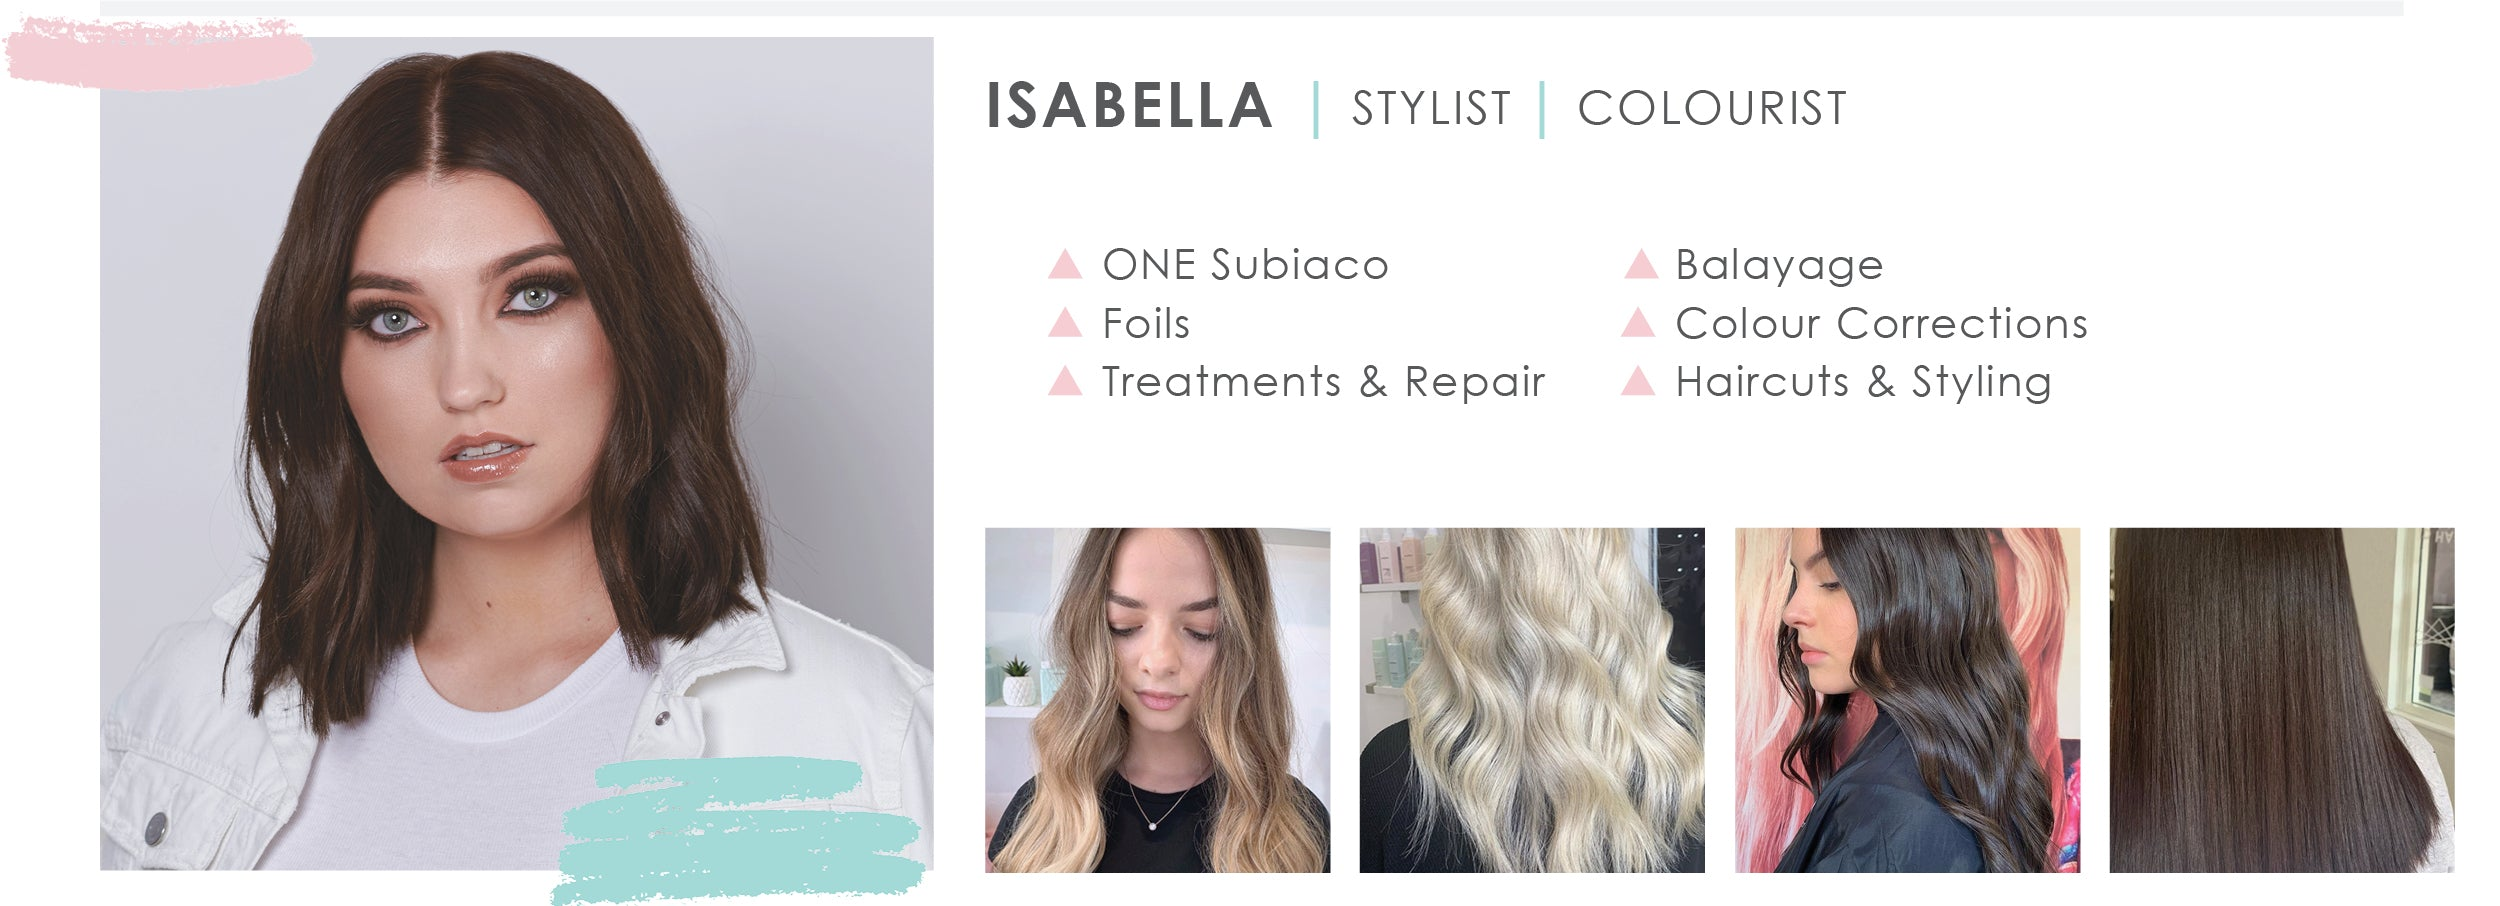 ABOUT Isabella ONE Subiaco Hair Salon Stylist and Colourist Perth